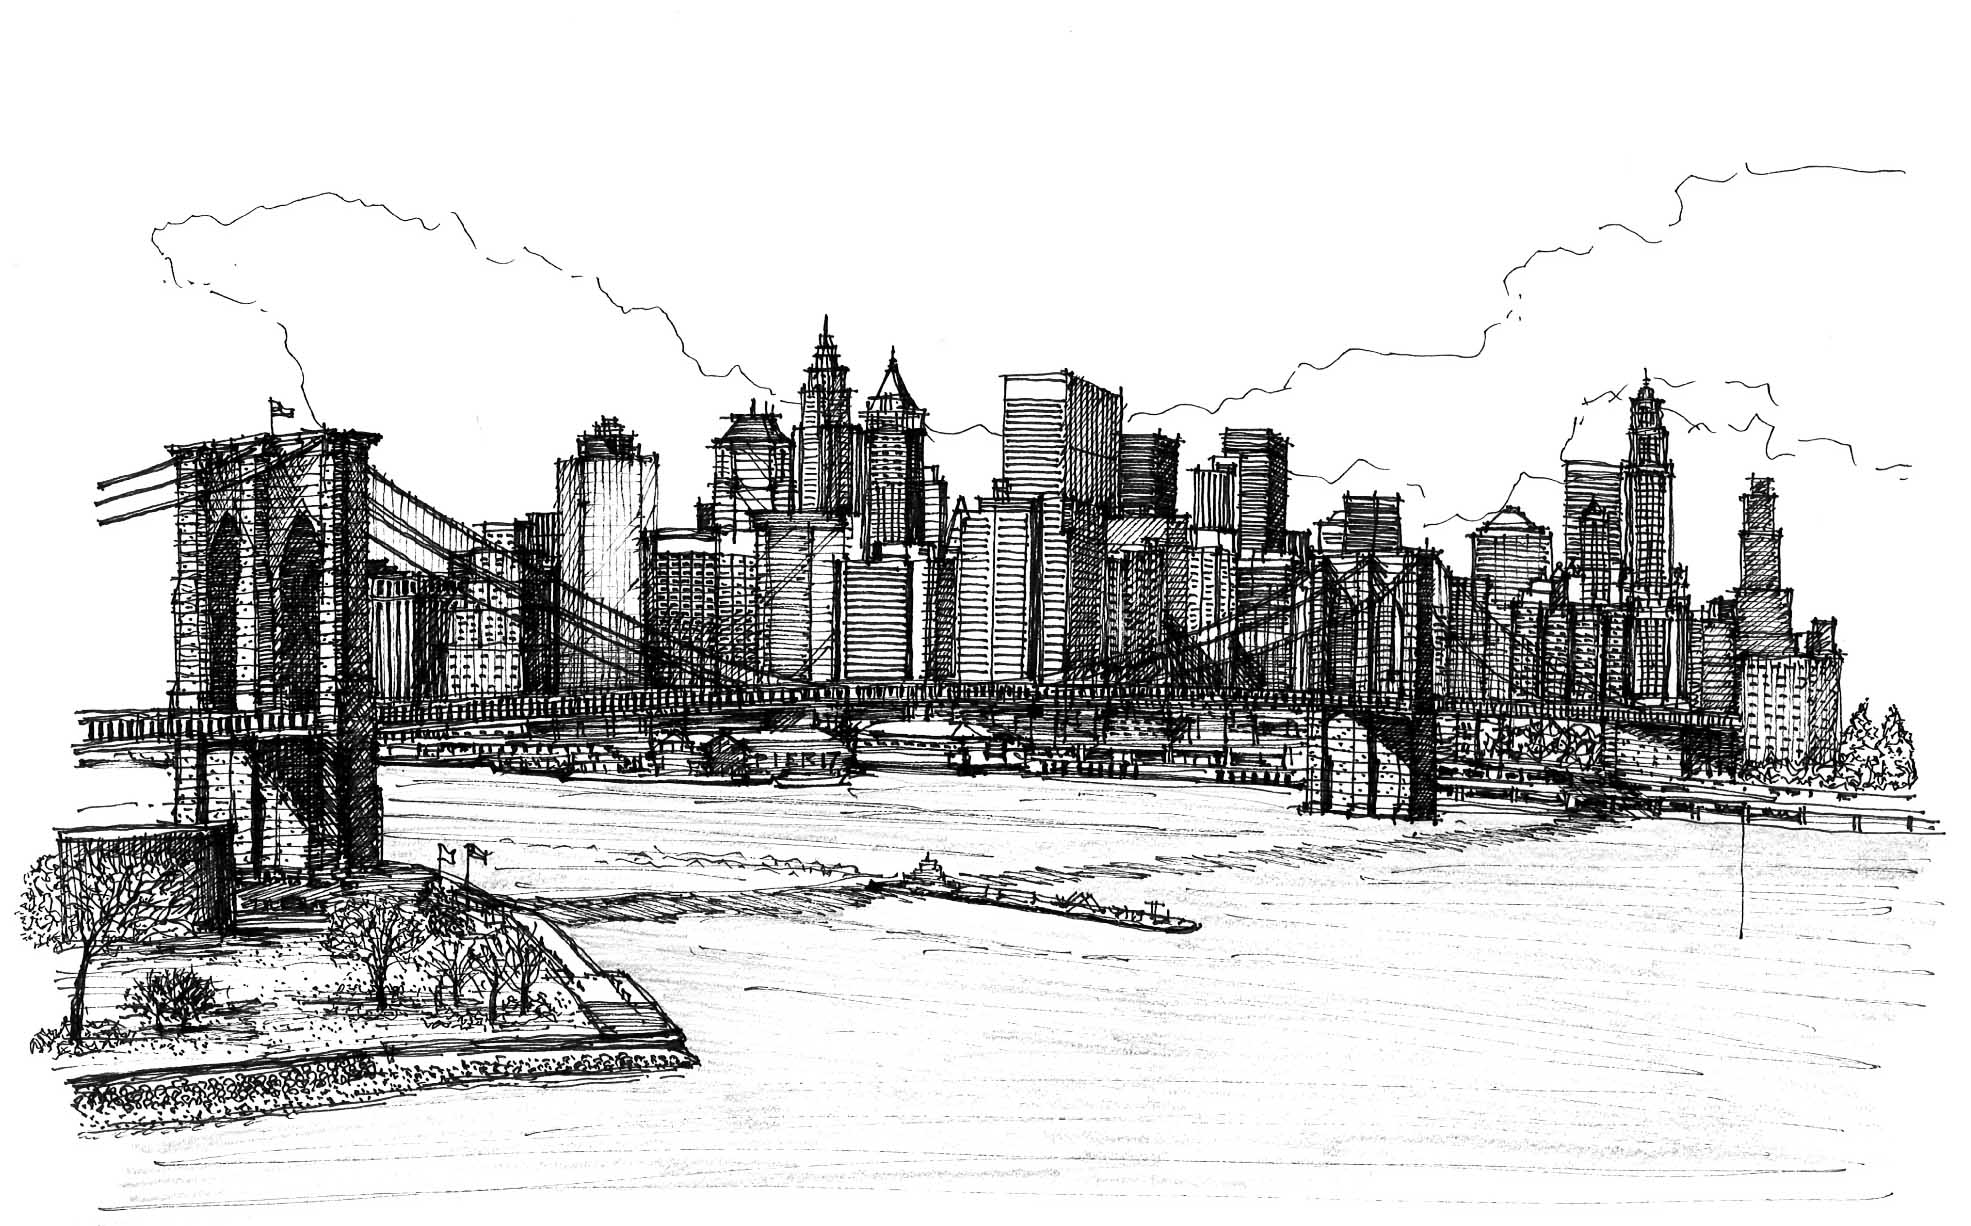 brooklyn_bridge_header.jpg